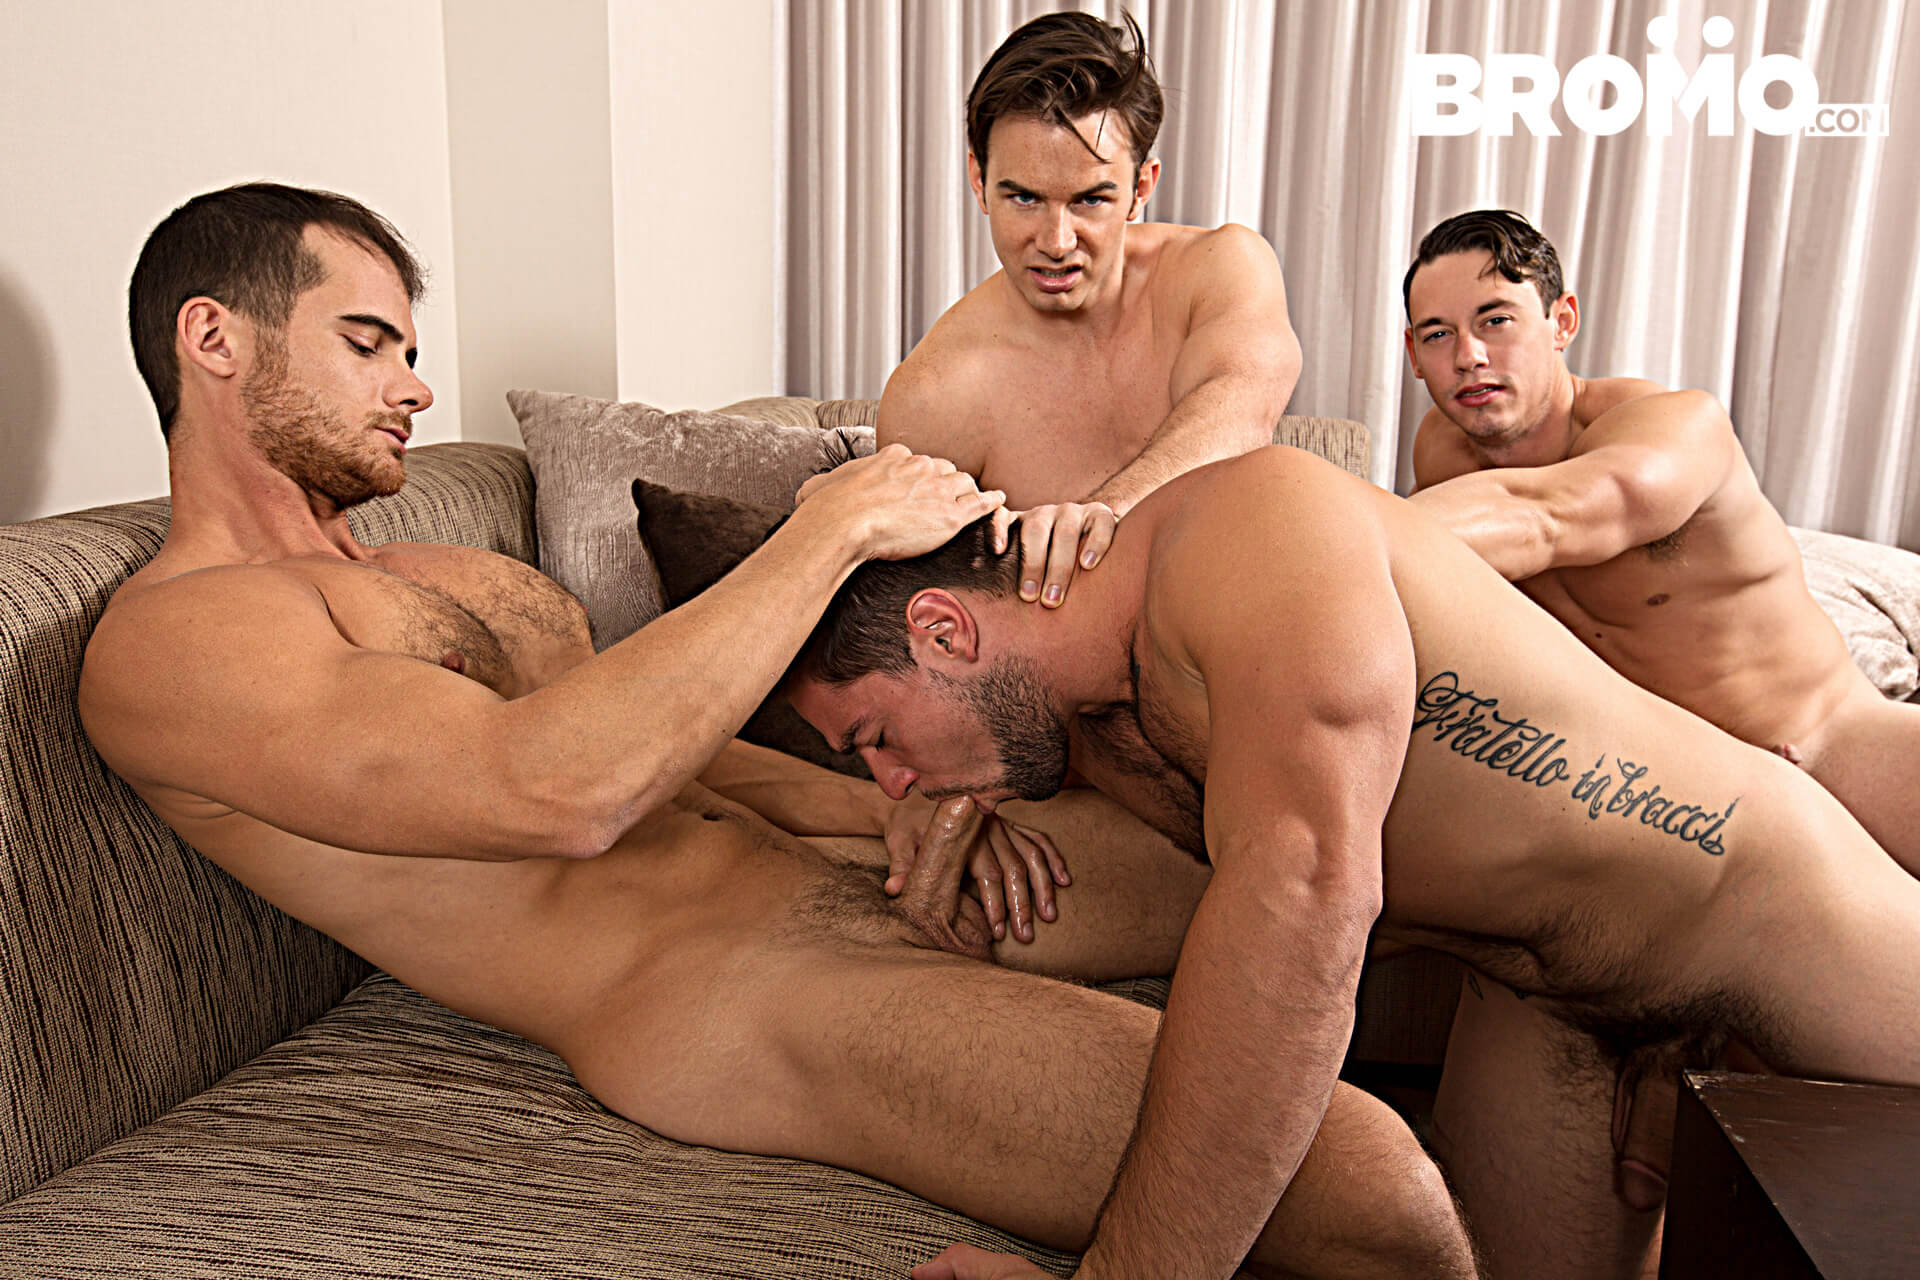 bromo str8 bitch part 4 aspen addison graham evan marco tobias gay porn blog image 15